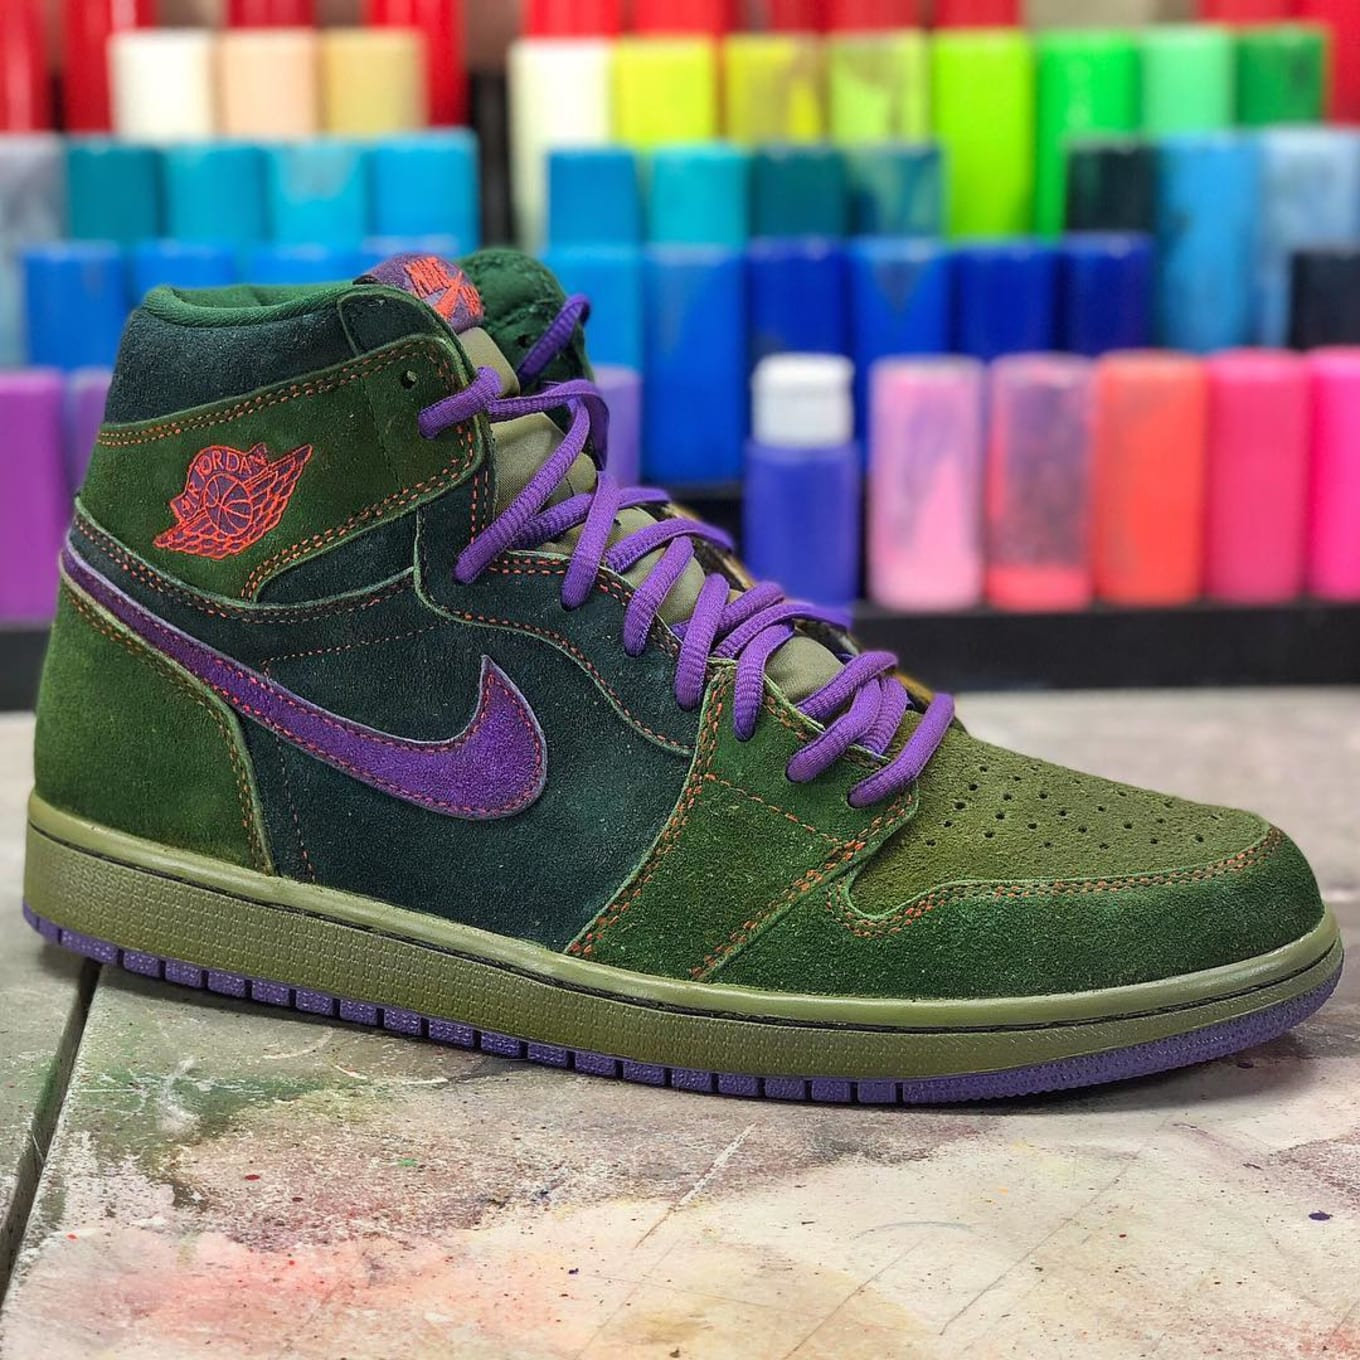 outlet store 70cf4 3ffa4 A Customizer Made  Skunk  Air Jordan 1s for 4 20